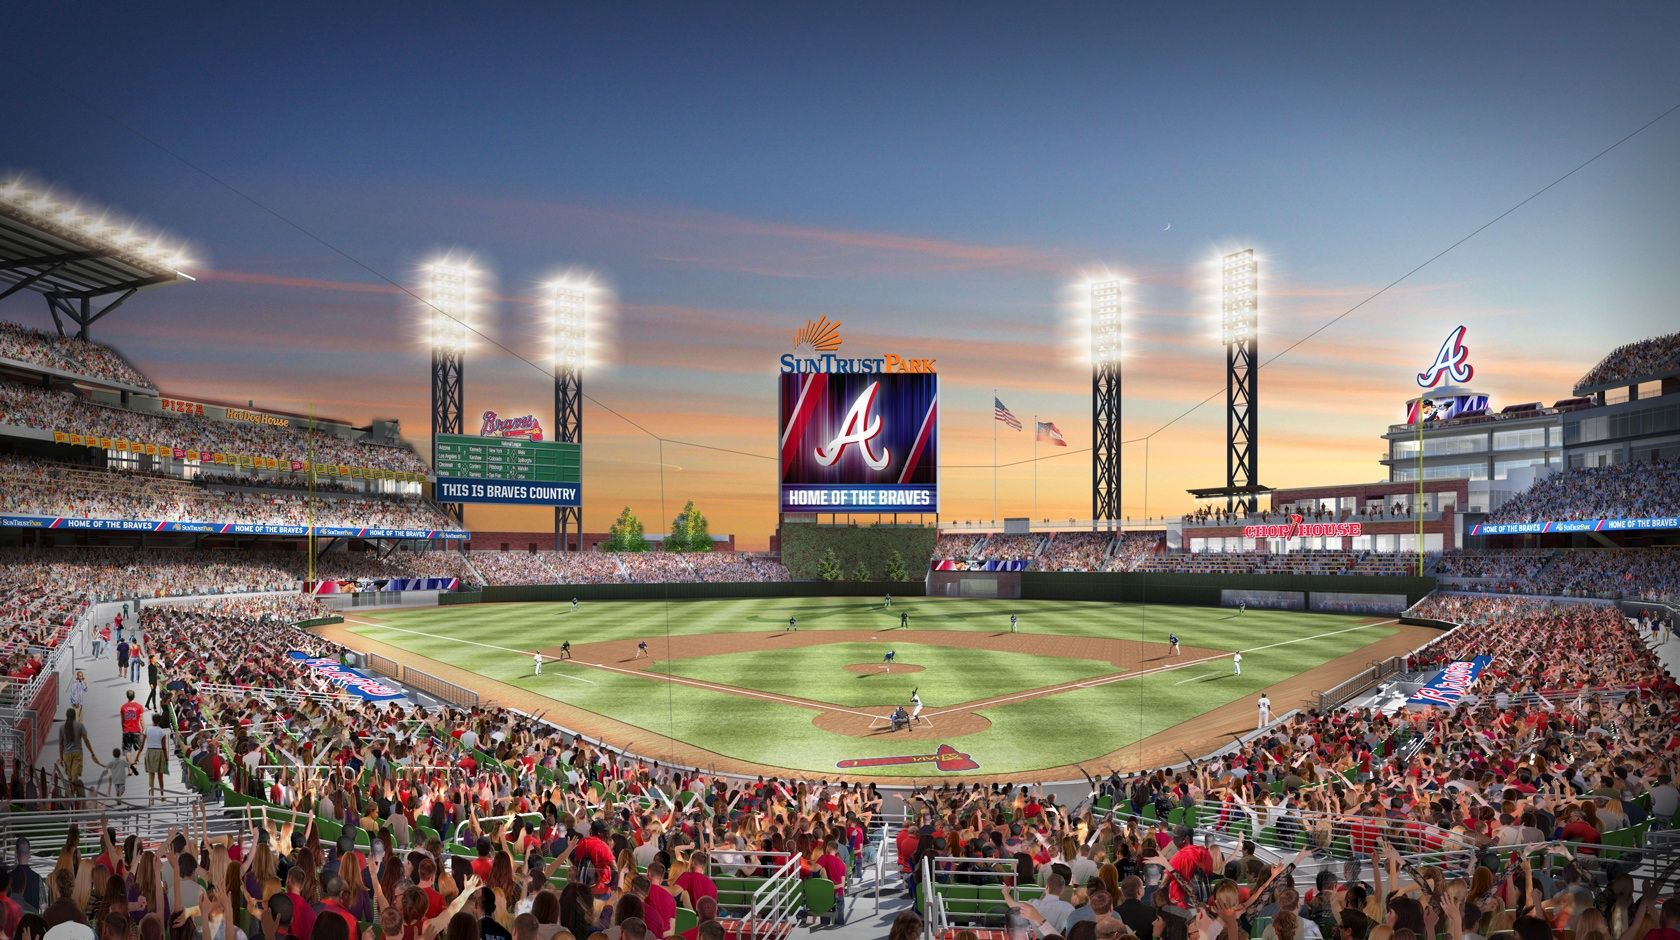 Sunset View I M Going To Miss Turner Field But Excited For The New Home Of The Braves Suntrust Park Atlanta Braves Braves